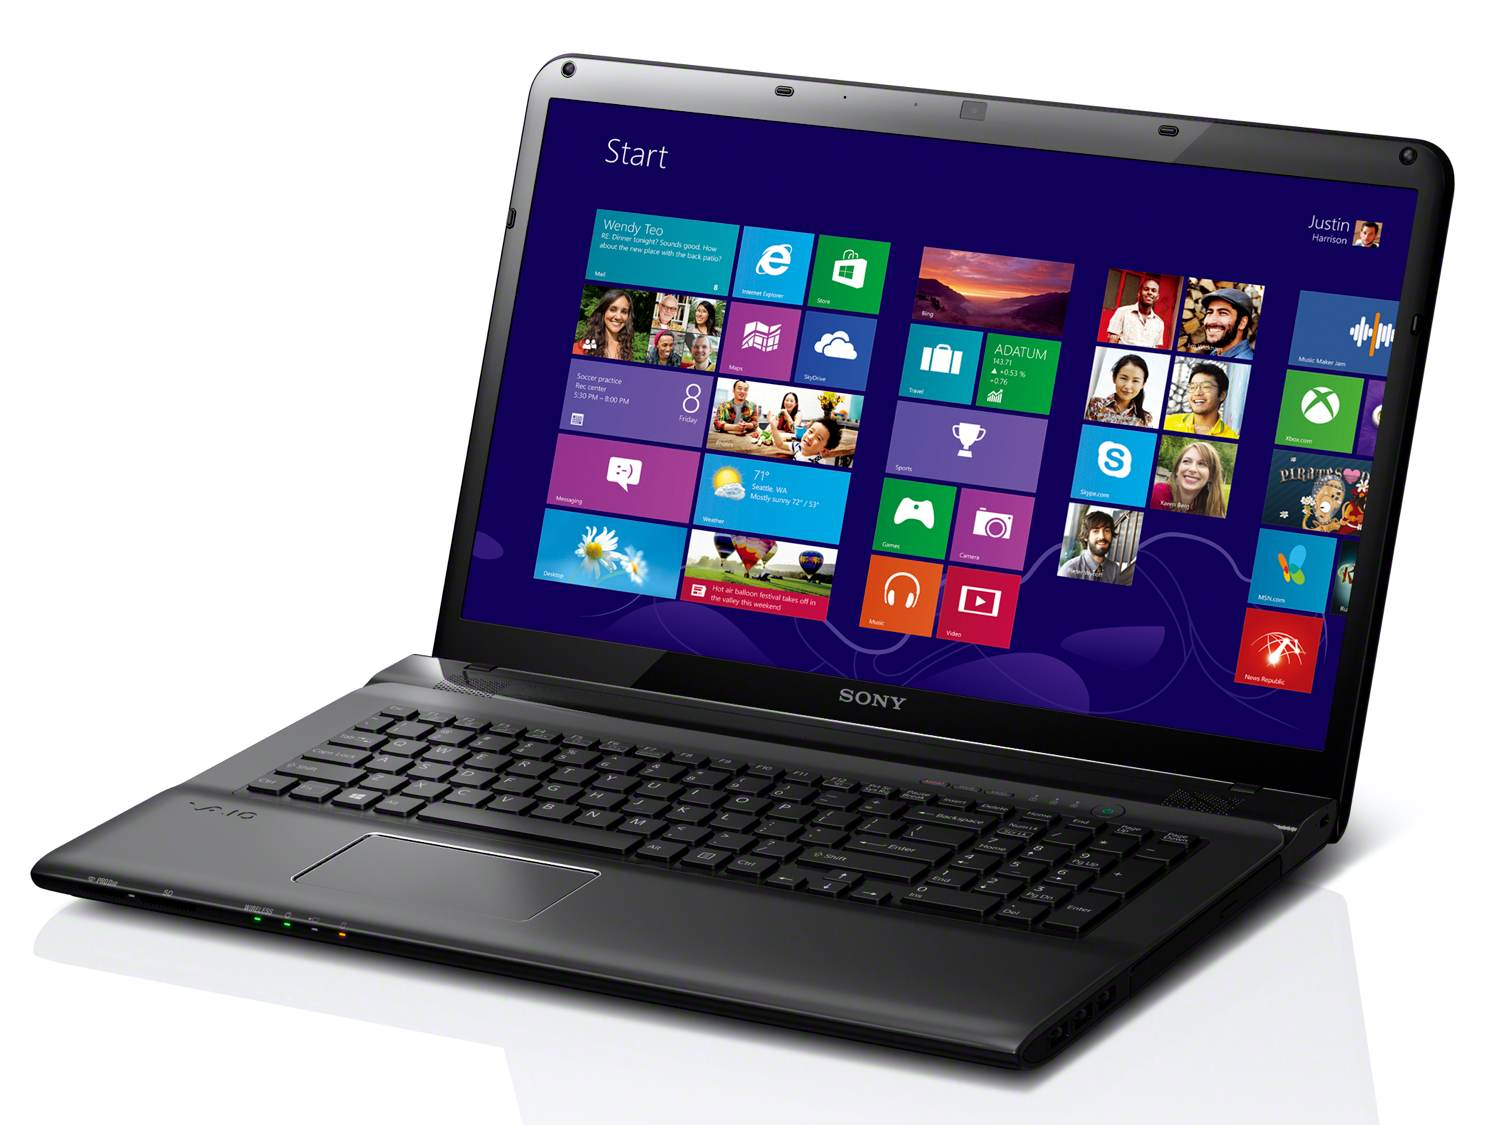 The 17.3-inch VAIO E Series laptop in black, powered by Windows 8